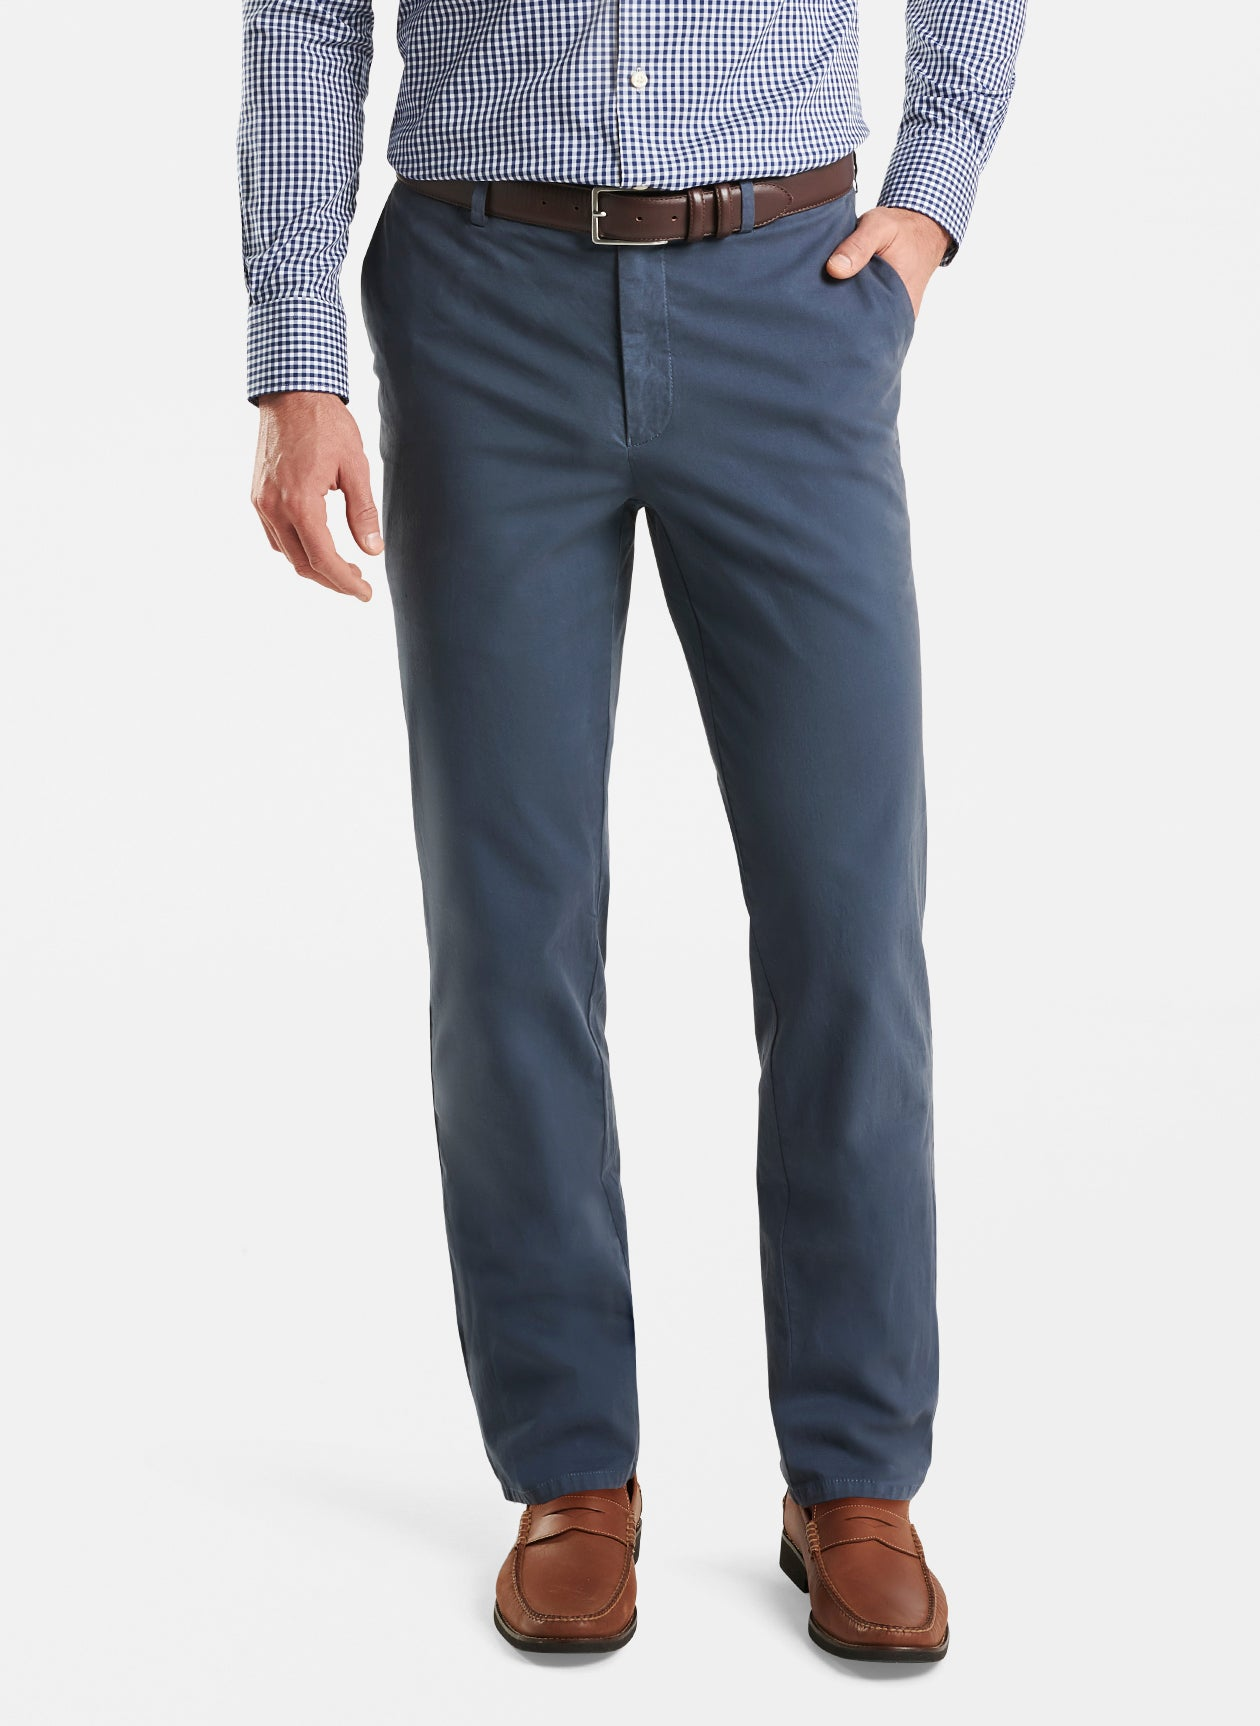 Flannel Five-Pocket Pant in Iron